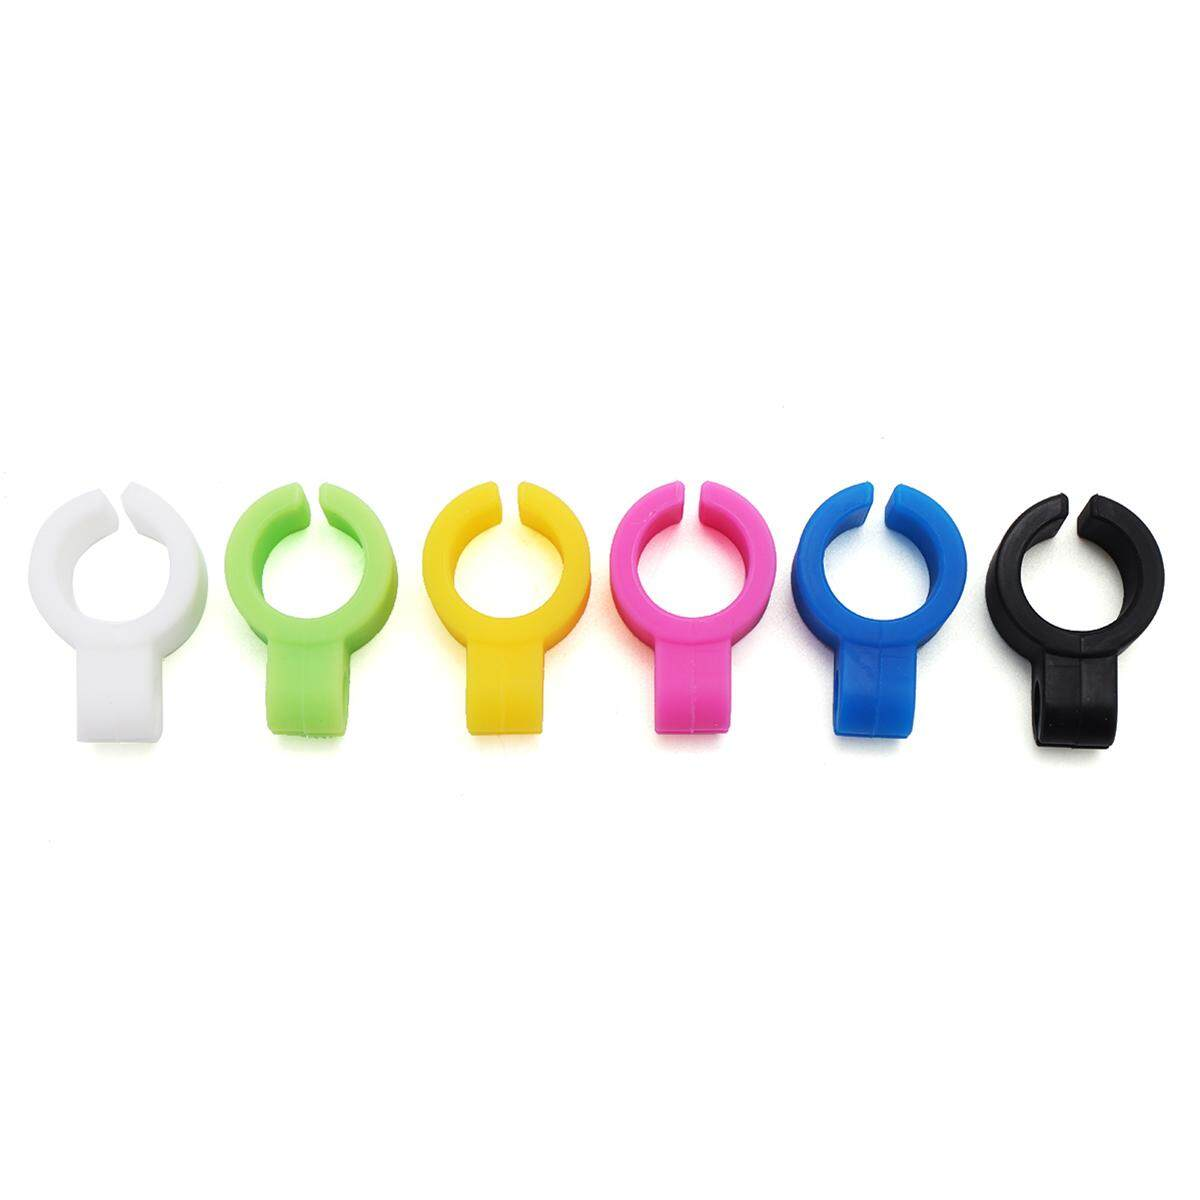 6pcs Silicone Ring Finger Hand Rack Holder For Regular Smoking Smoker - Intl By Threegold.